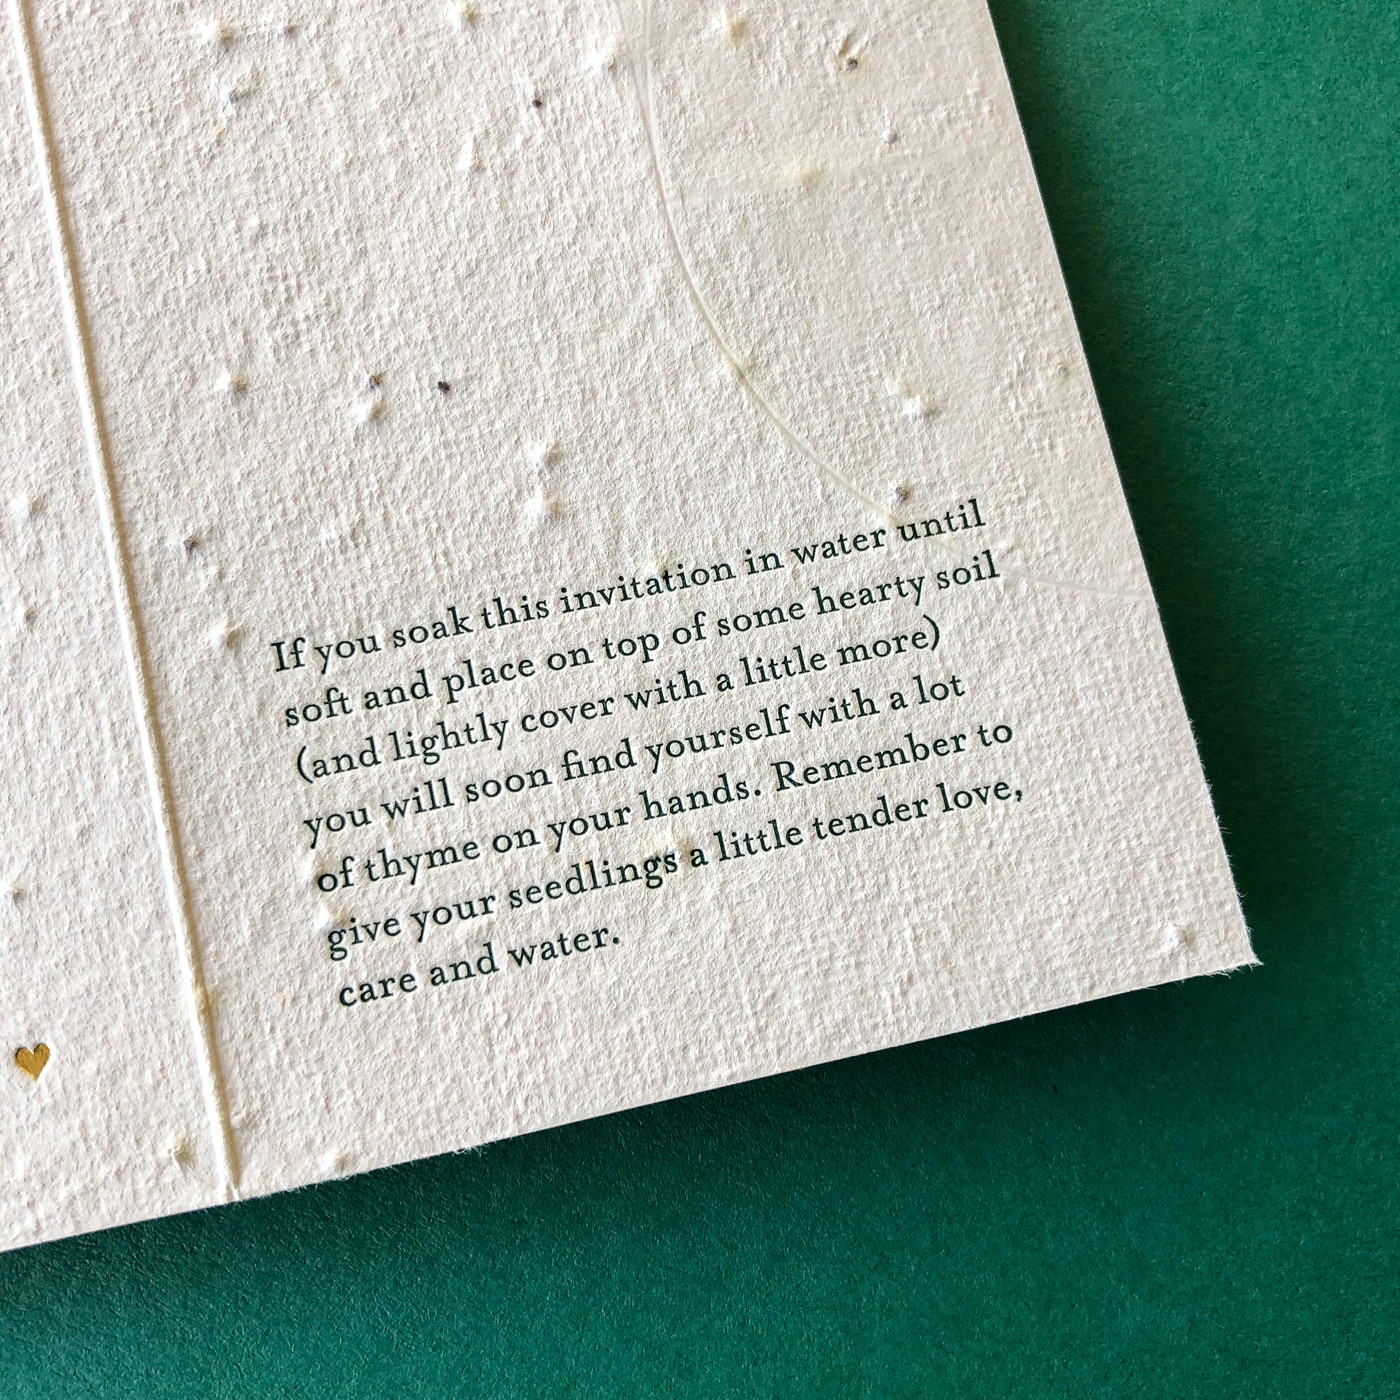 Unique letterpress and gold foil invitations designed for Cassy and Ben on handmade plantable seed paper